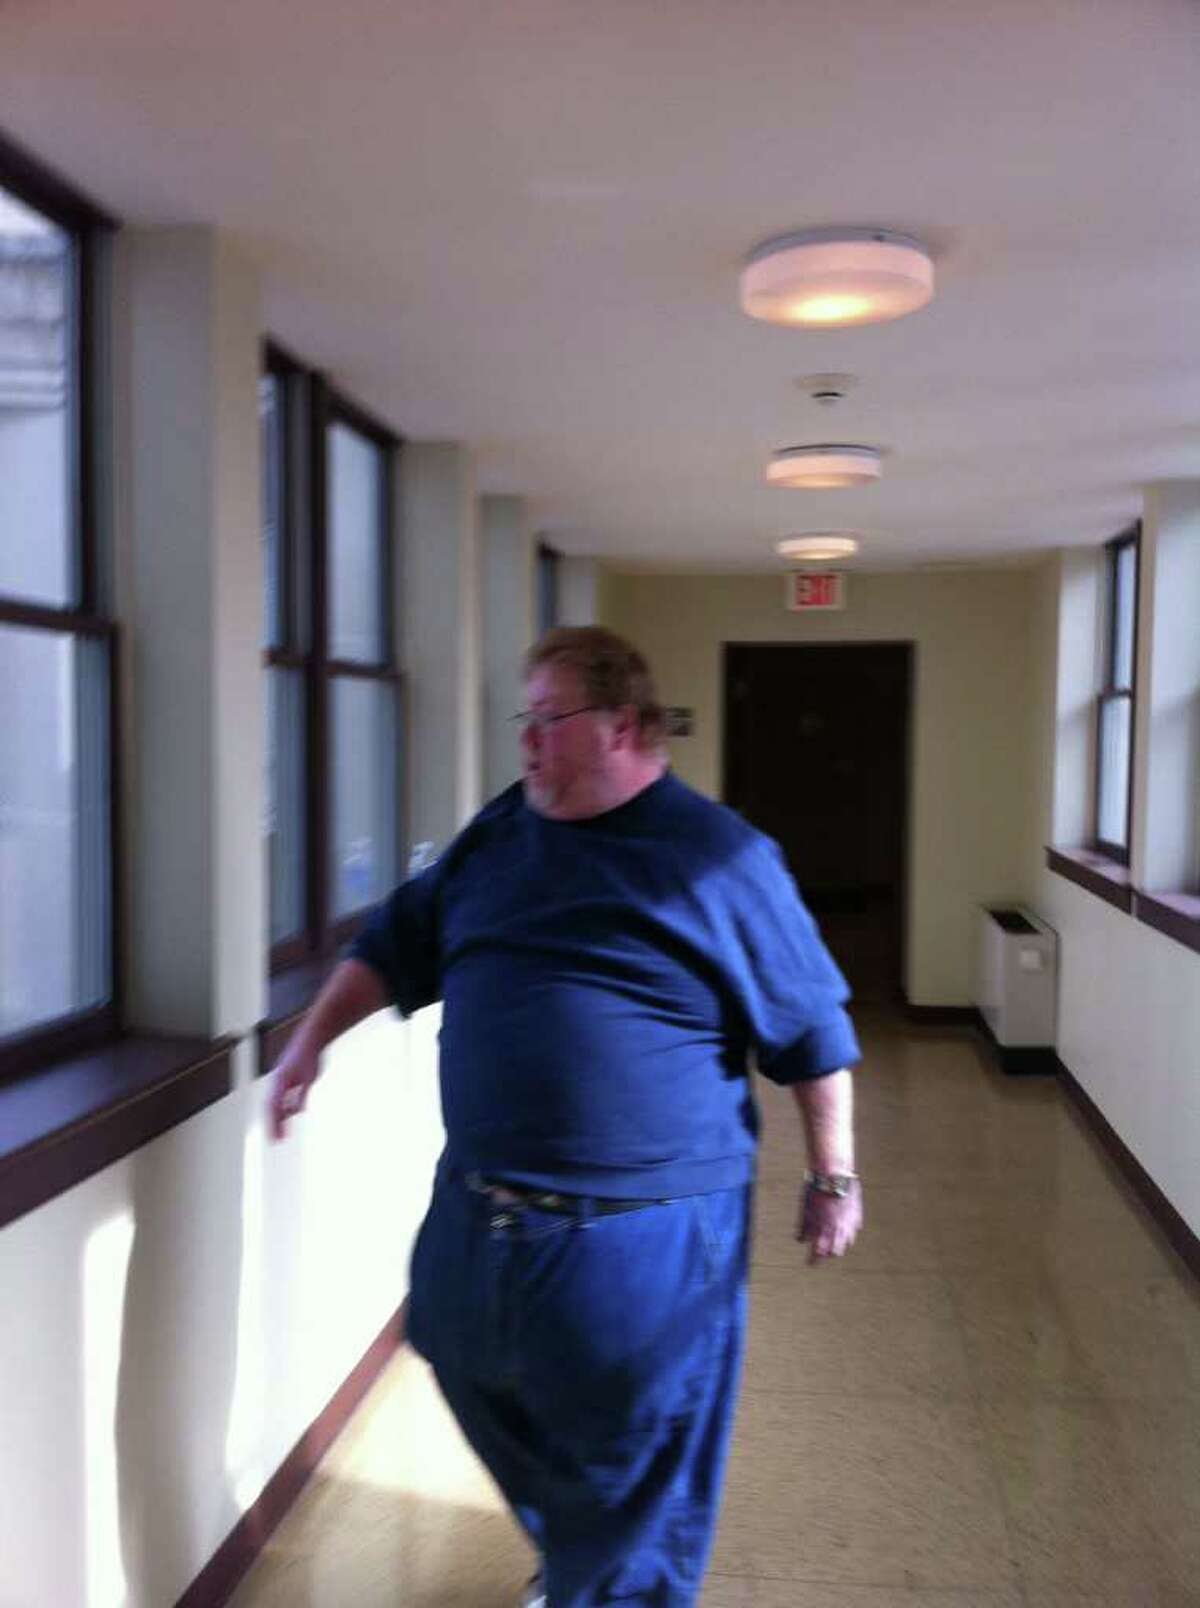 Anthony DeFiglio leaves the grand jury room on Thursday, Nov. 3, 2011, after testifying before the grand jury investigating absentee ballot fraud in Rensselaer County. (Kenneth C. Crowe II / Times Union archive)